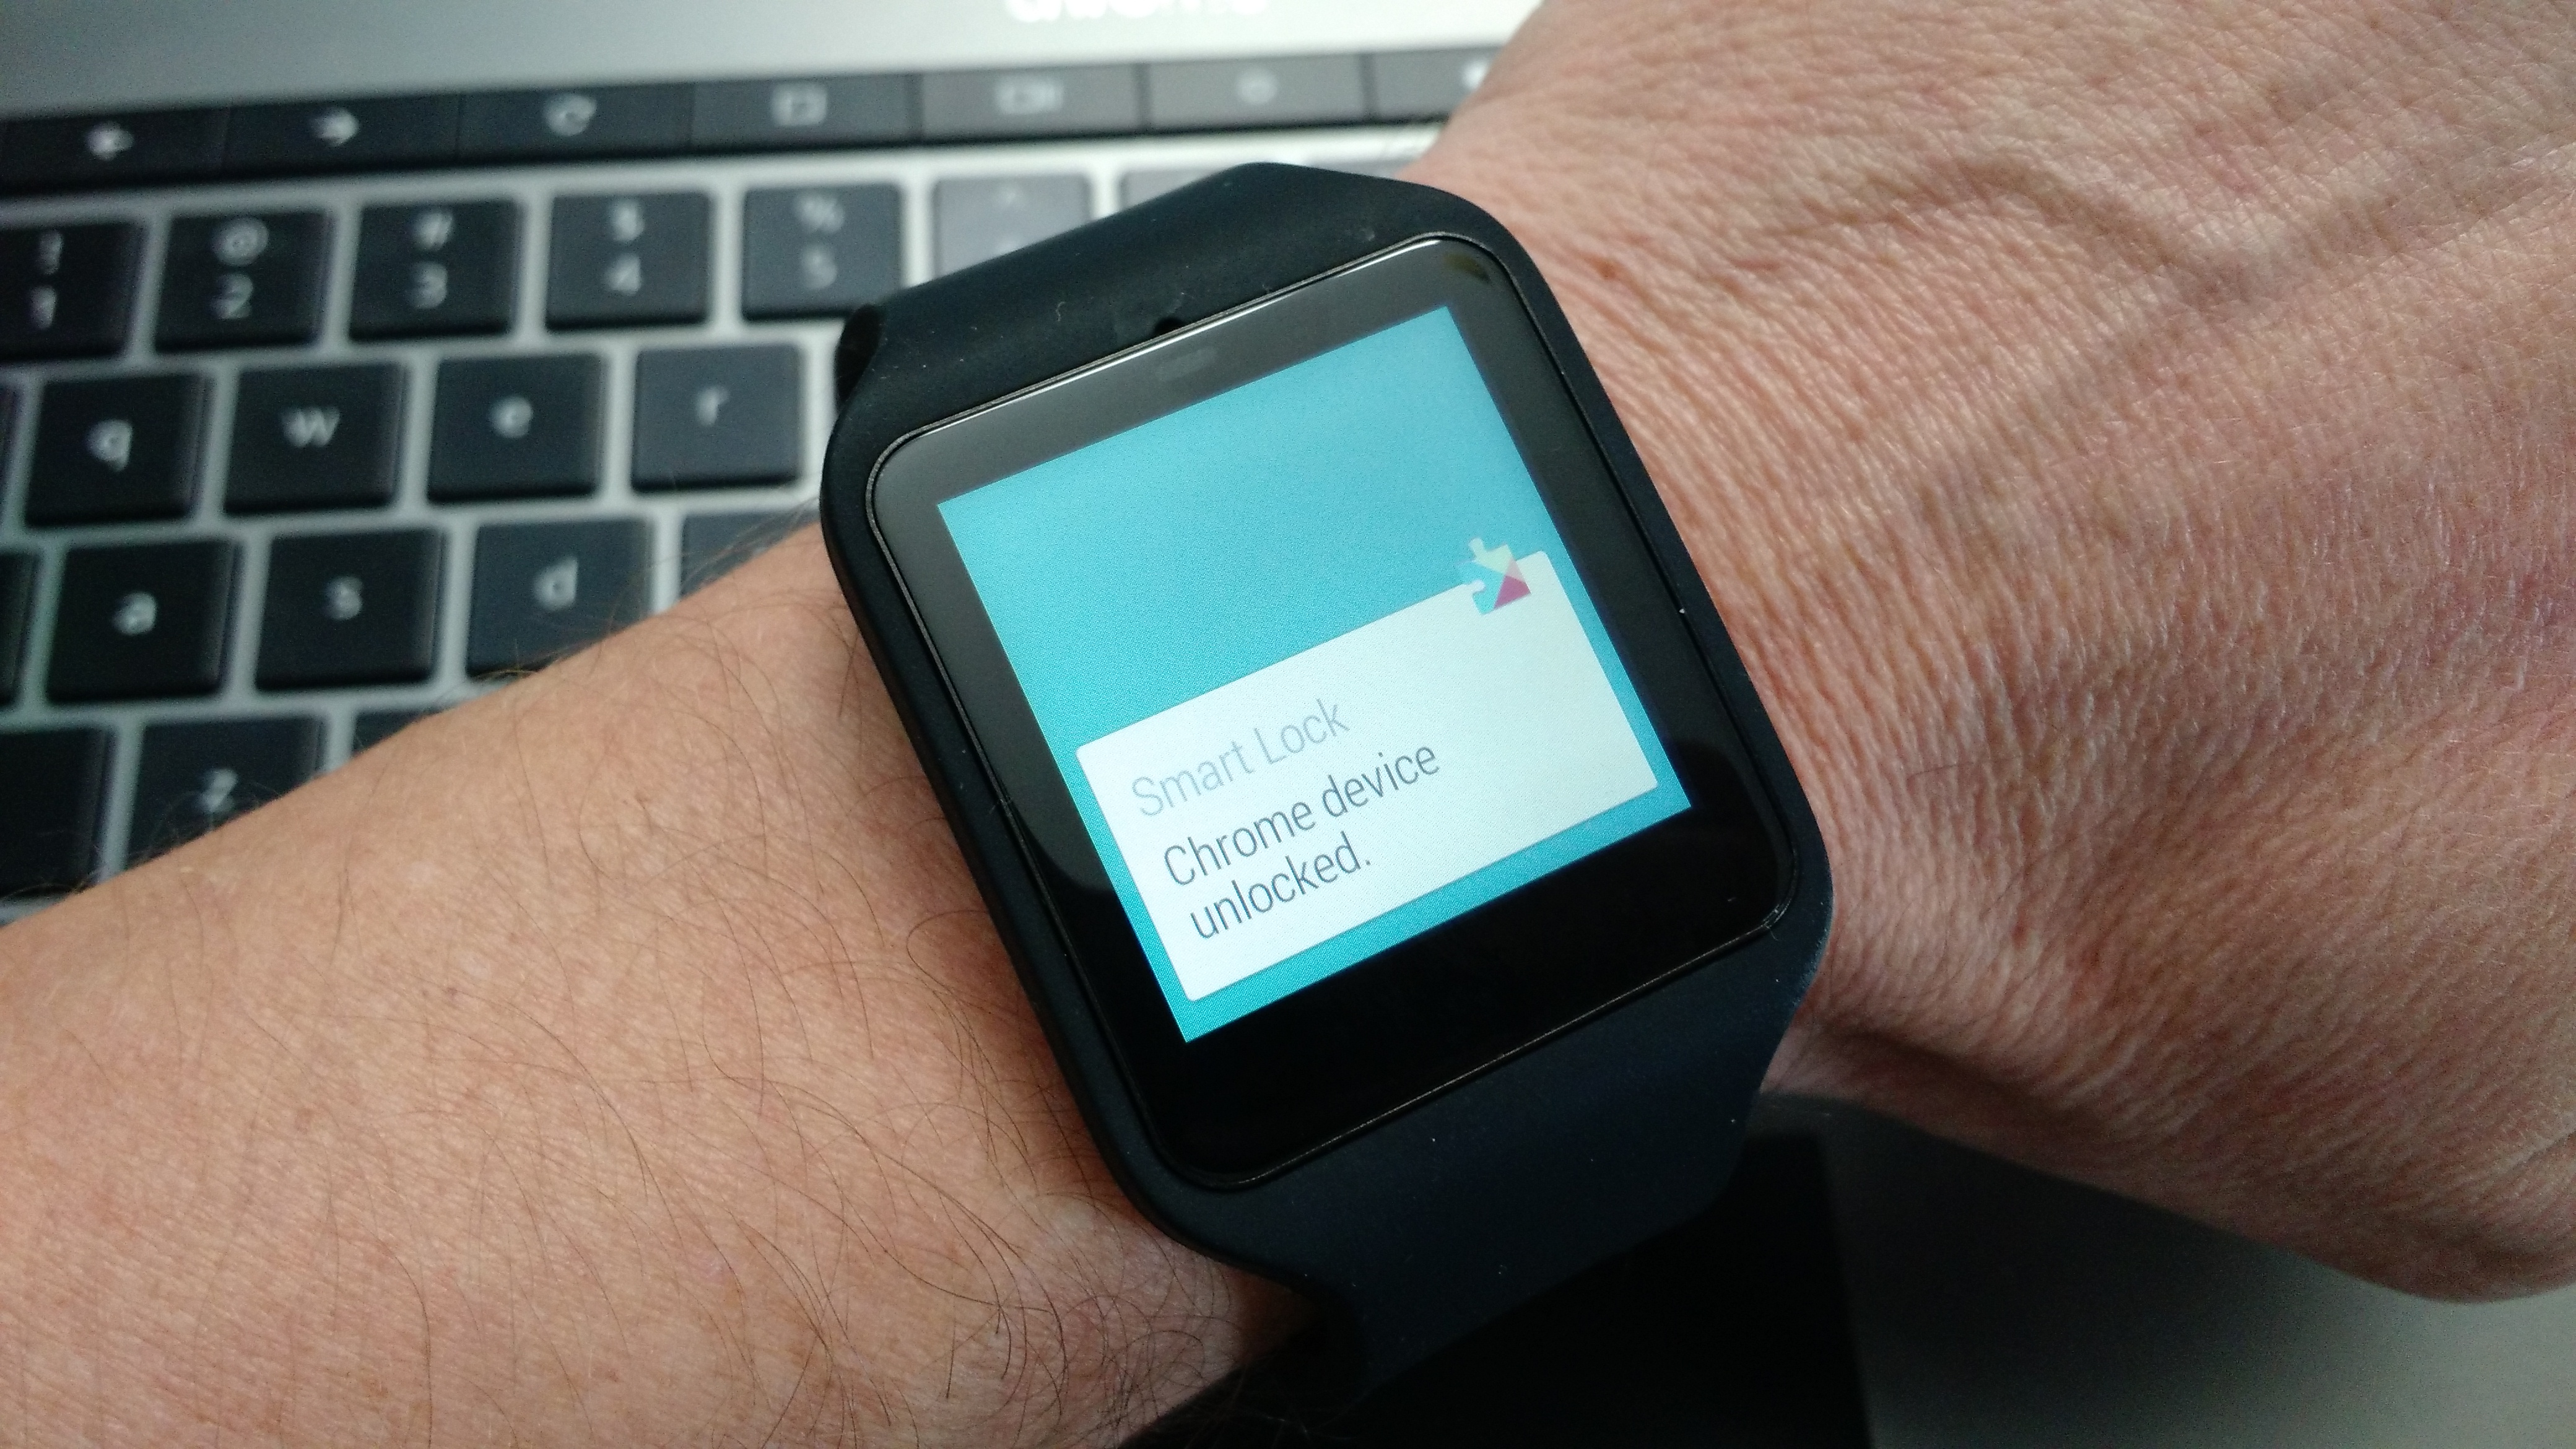 Android Wear unlocked Chromebook